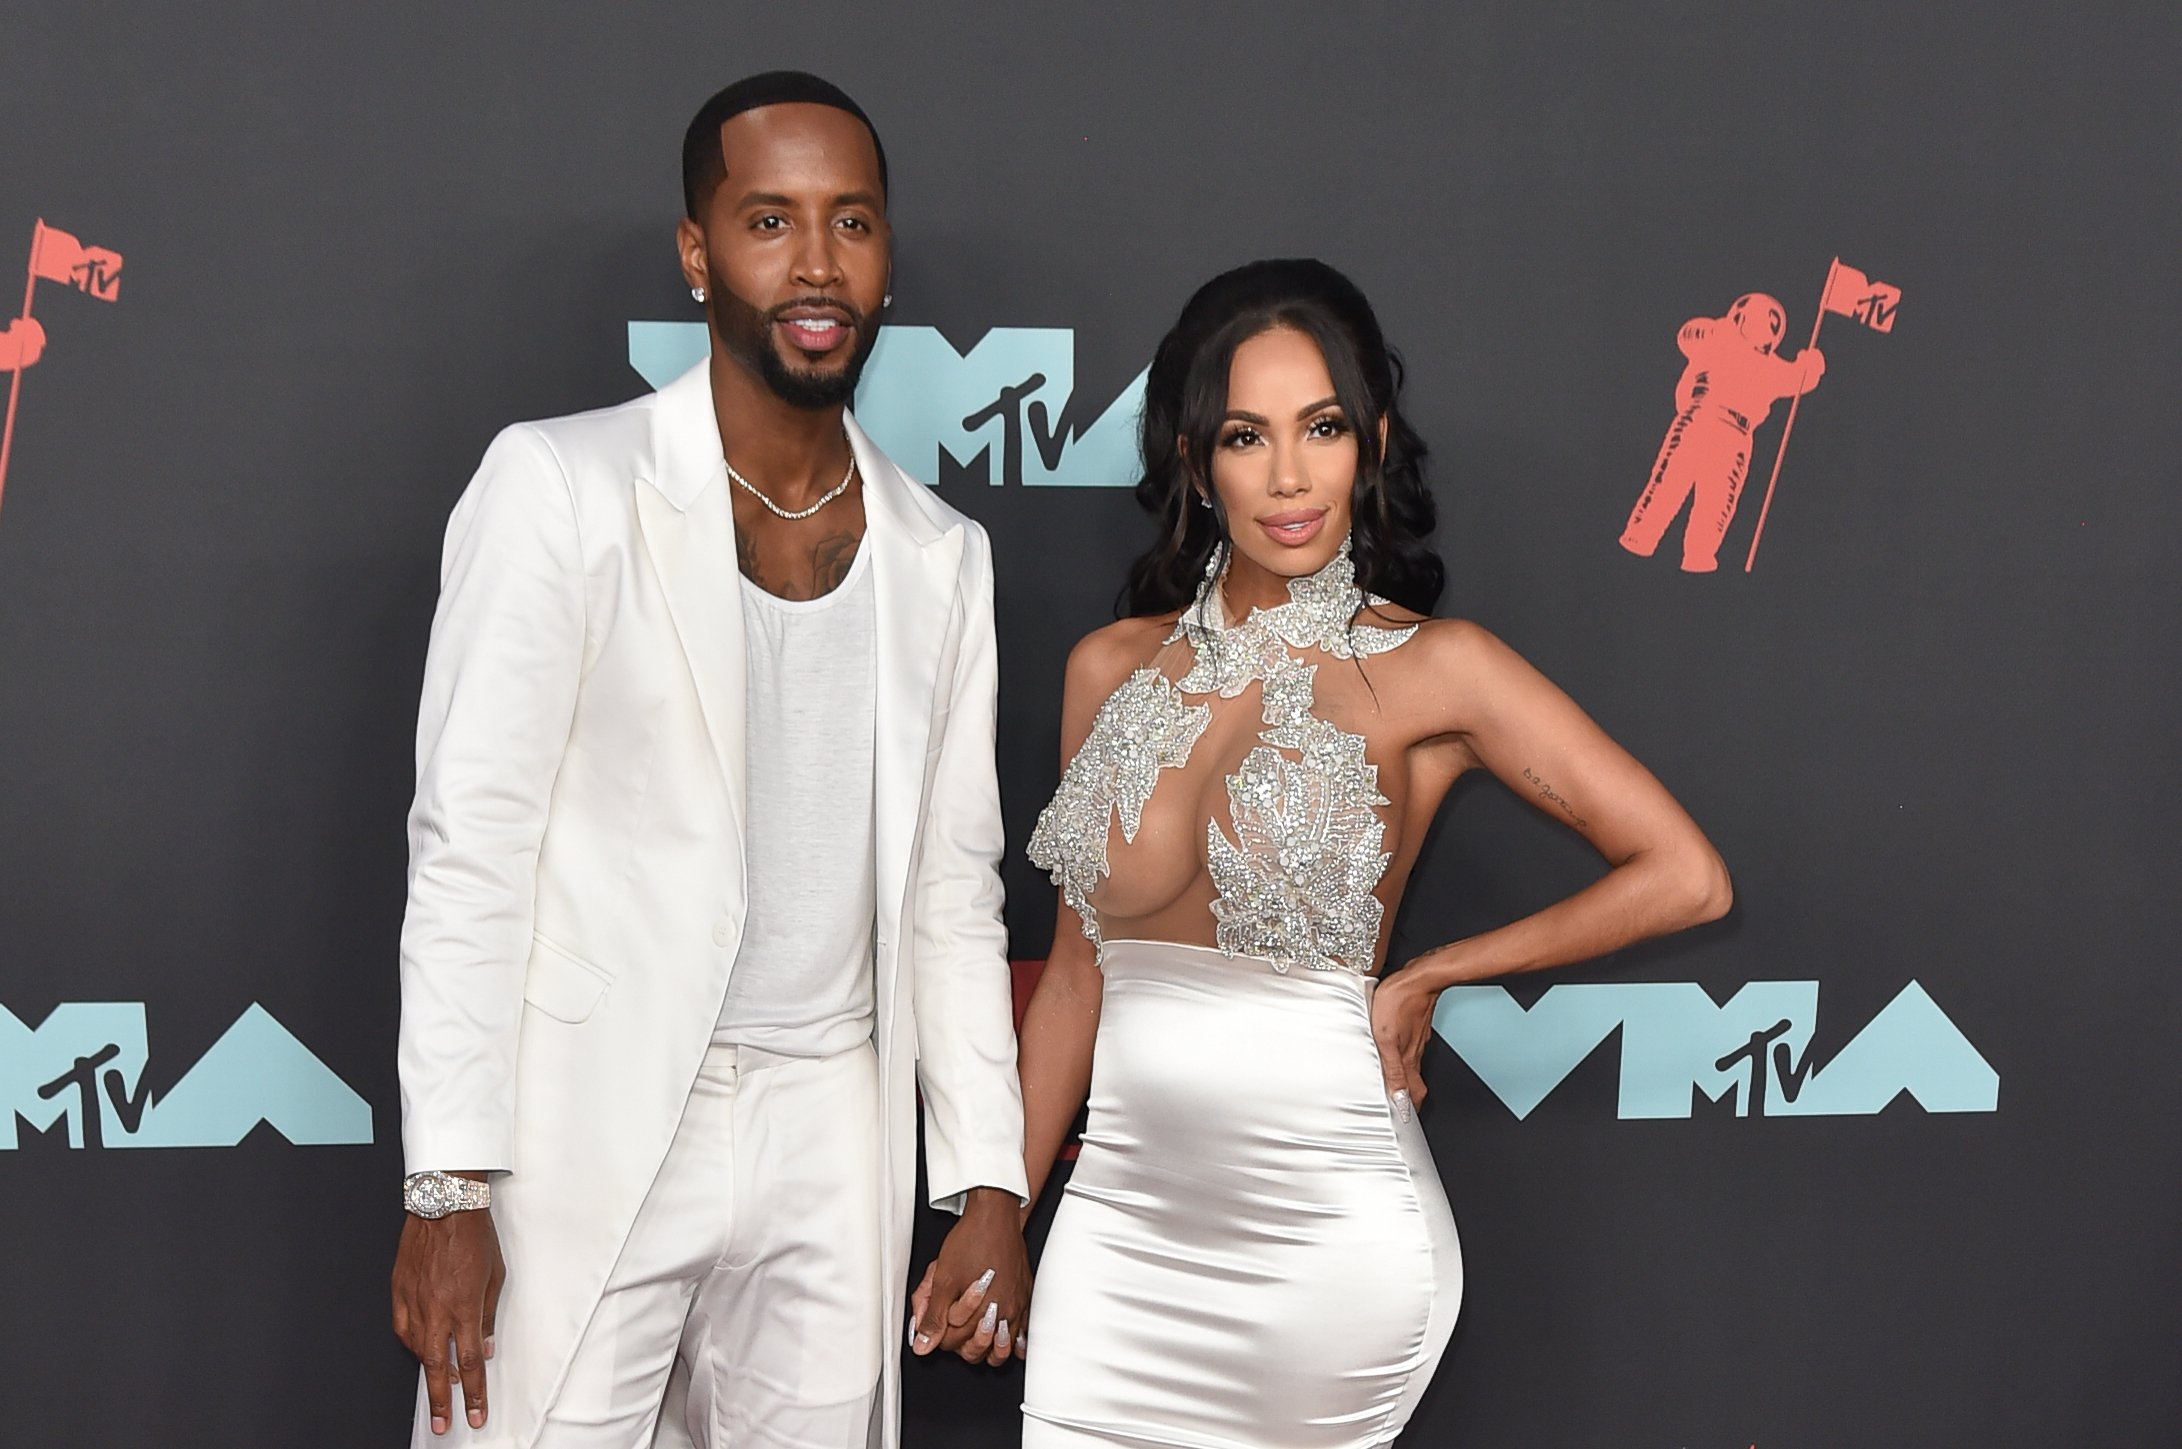 Safaree Samuels and Erica Mena Samuels at the 2019 MTV VMAs red carpet at Prudential Center on August 26, 2019 in Newark, New Jersey.| Source: Getty Images